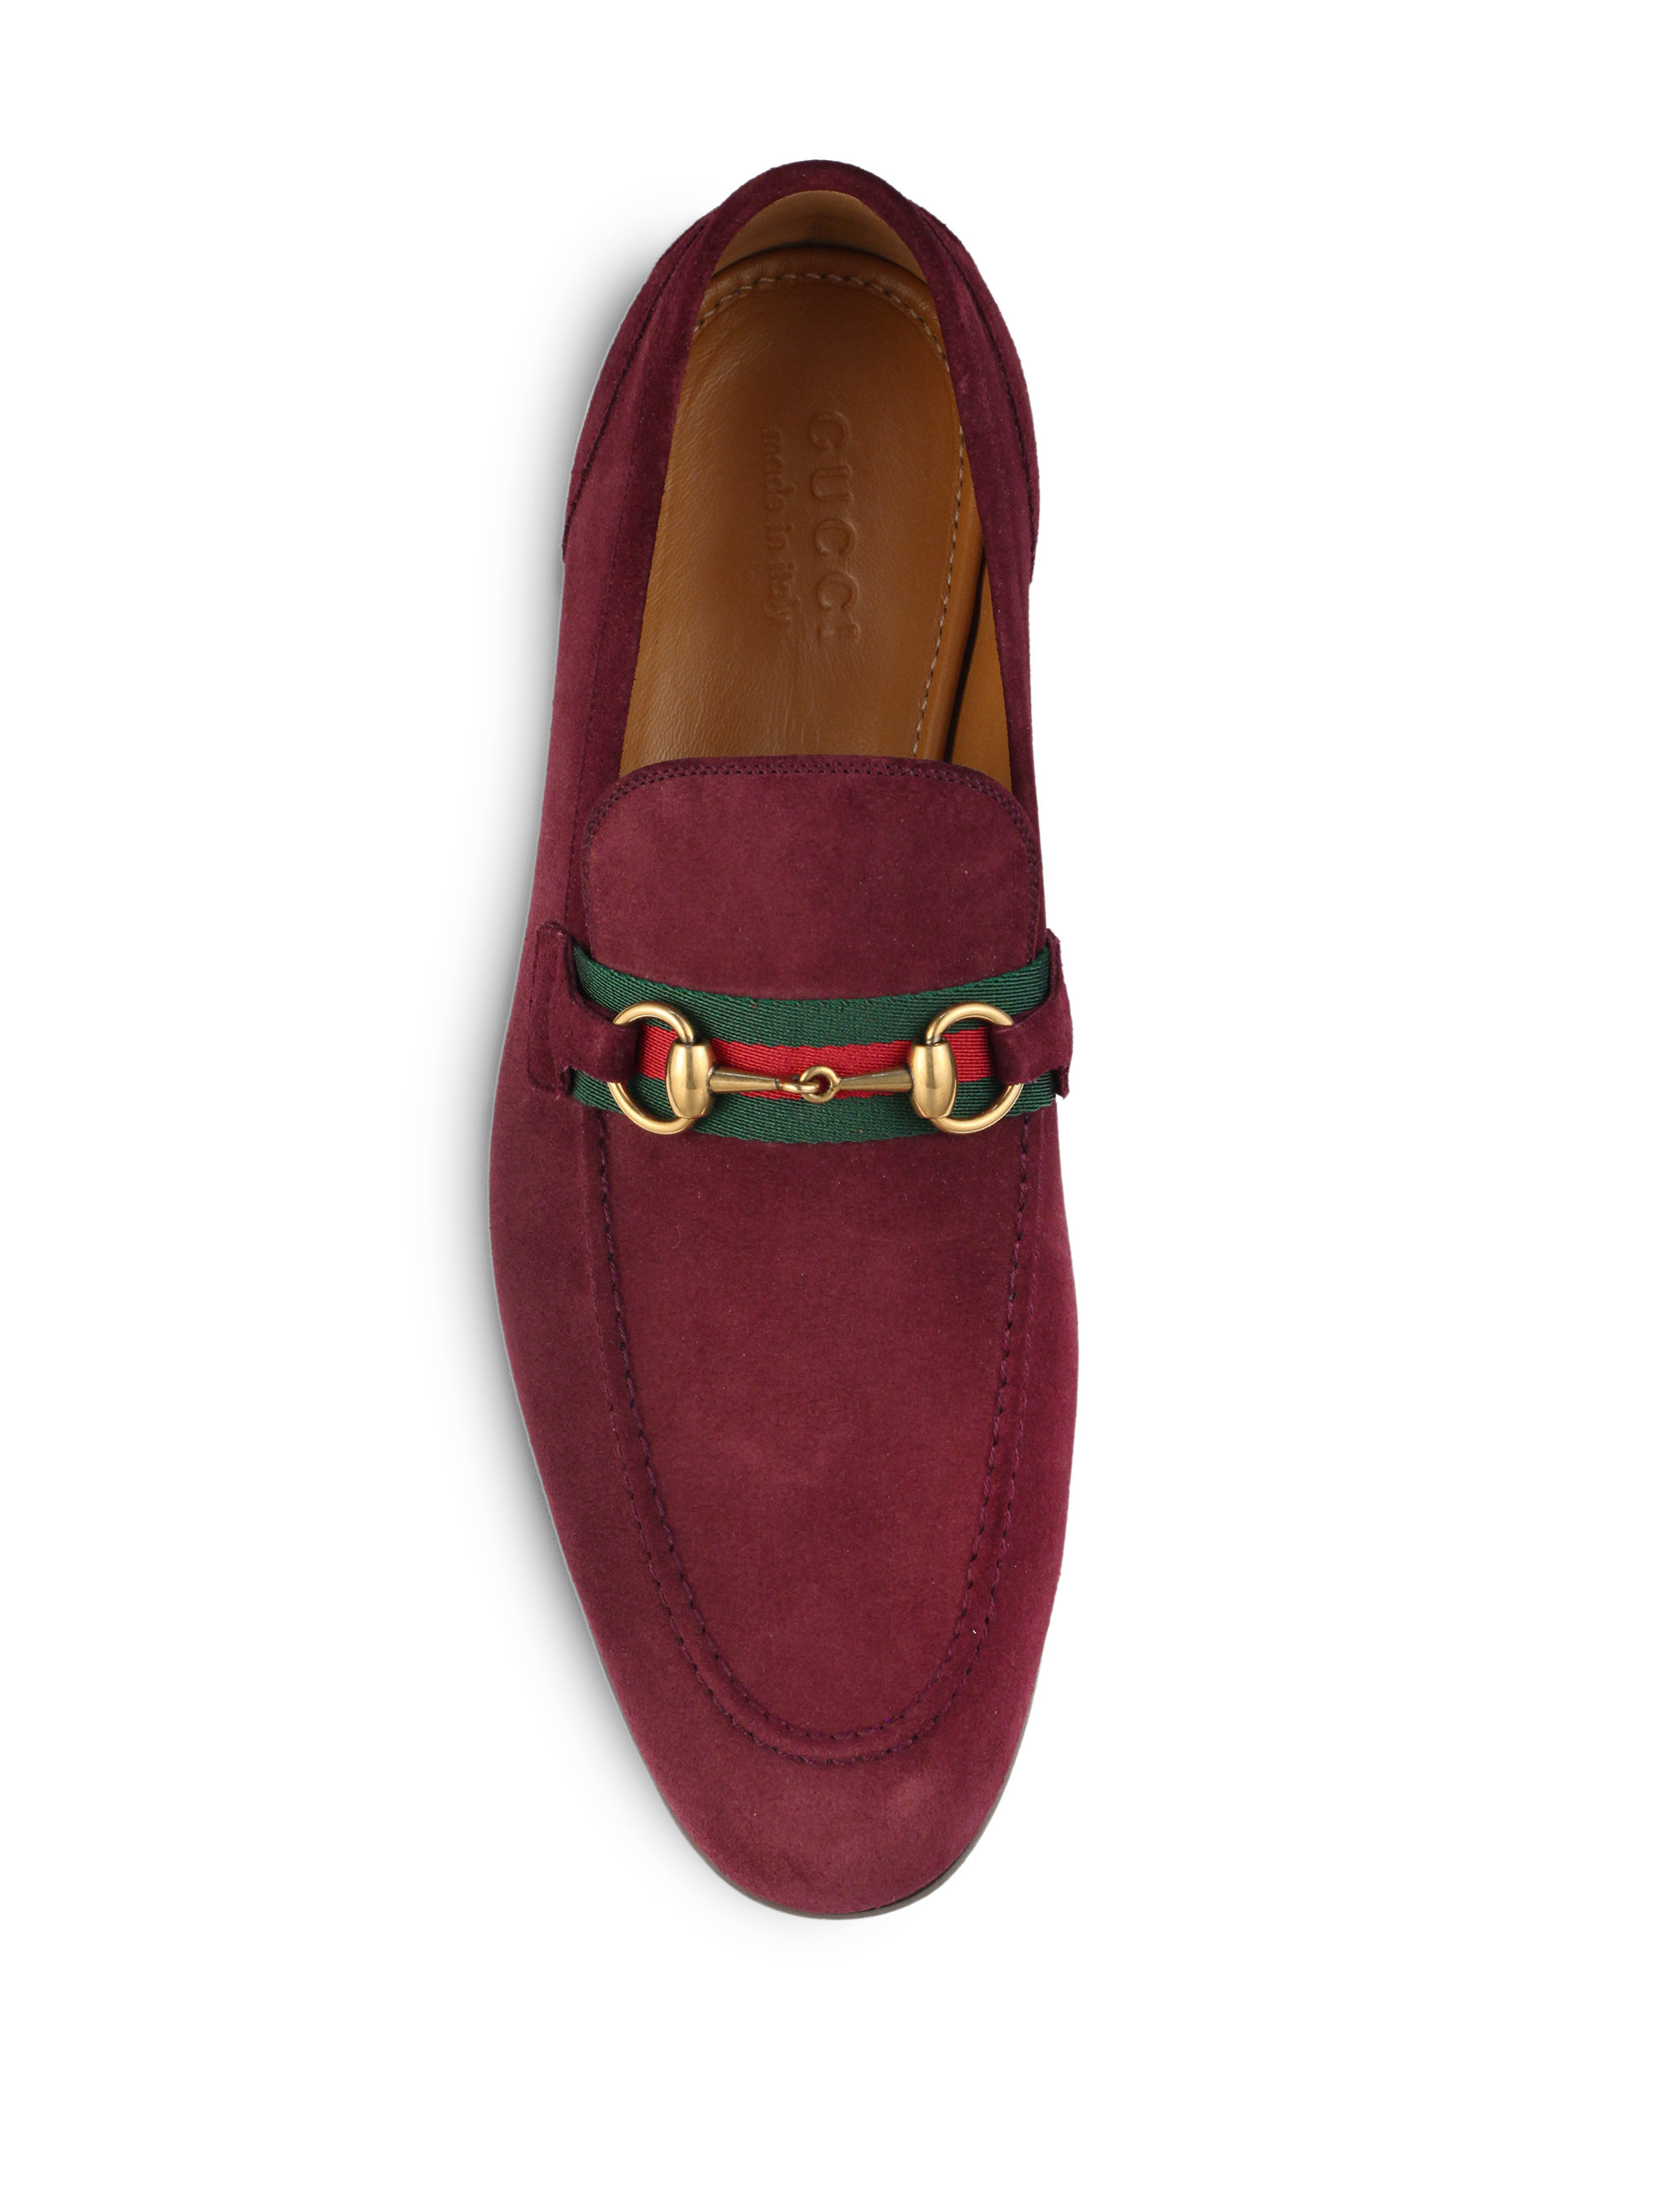 eaffeda5f2b91 Gucci Suede Horsebit Loafers in Red for Men - Lyst